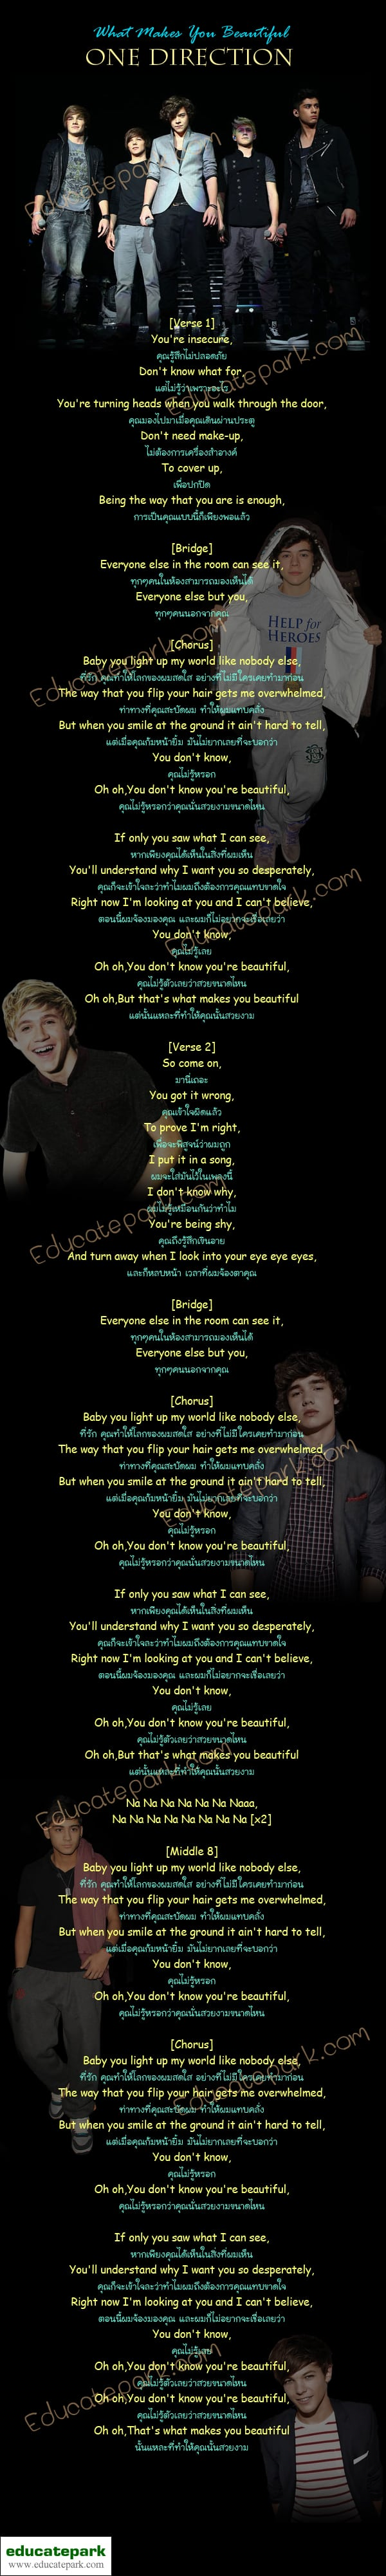 แปลเพลง What Make You Beautiful - One Direction